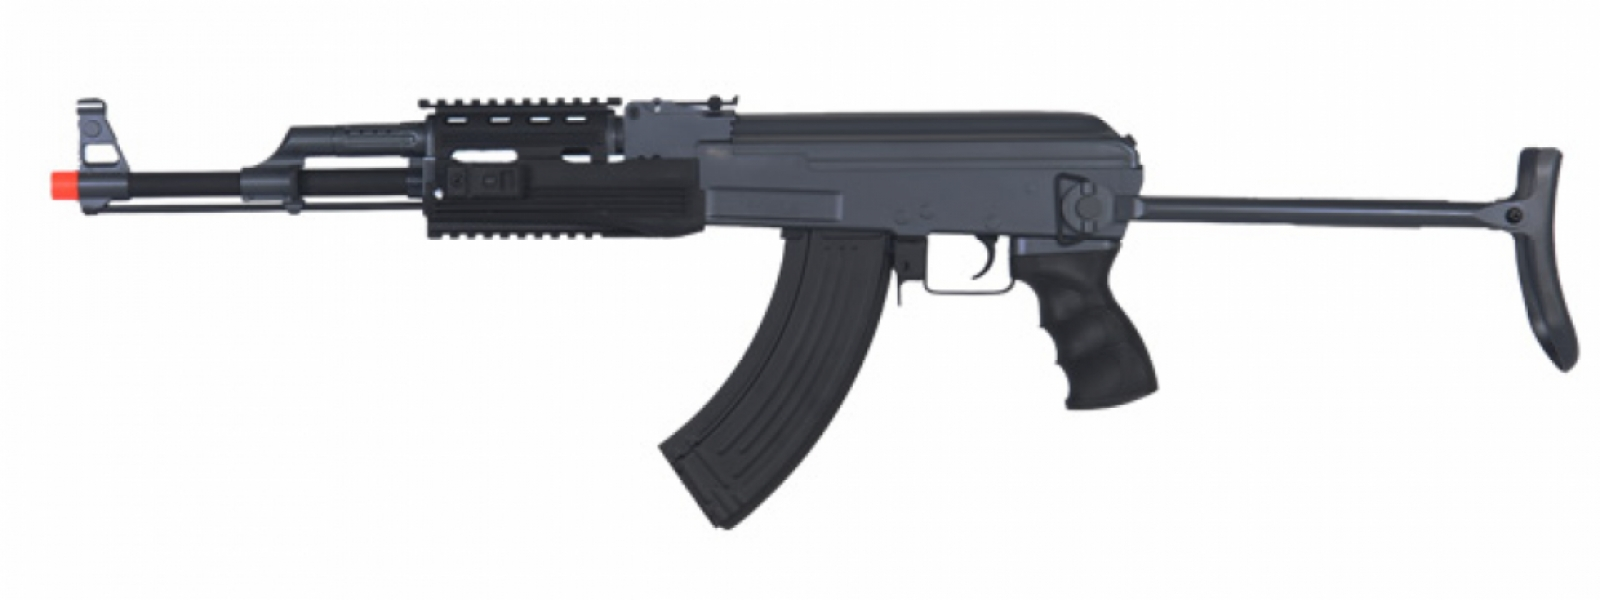 Cyma IU-AK47S Tactical AK47 RIS Auto Electric Gun Metal Gear, ABS Body, Metal Under Folding Stock